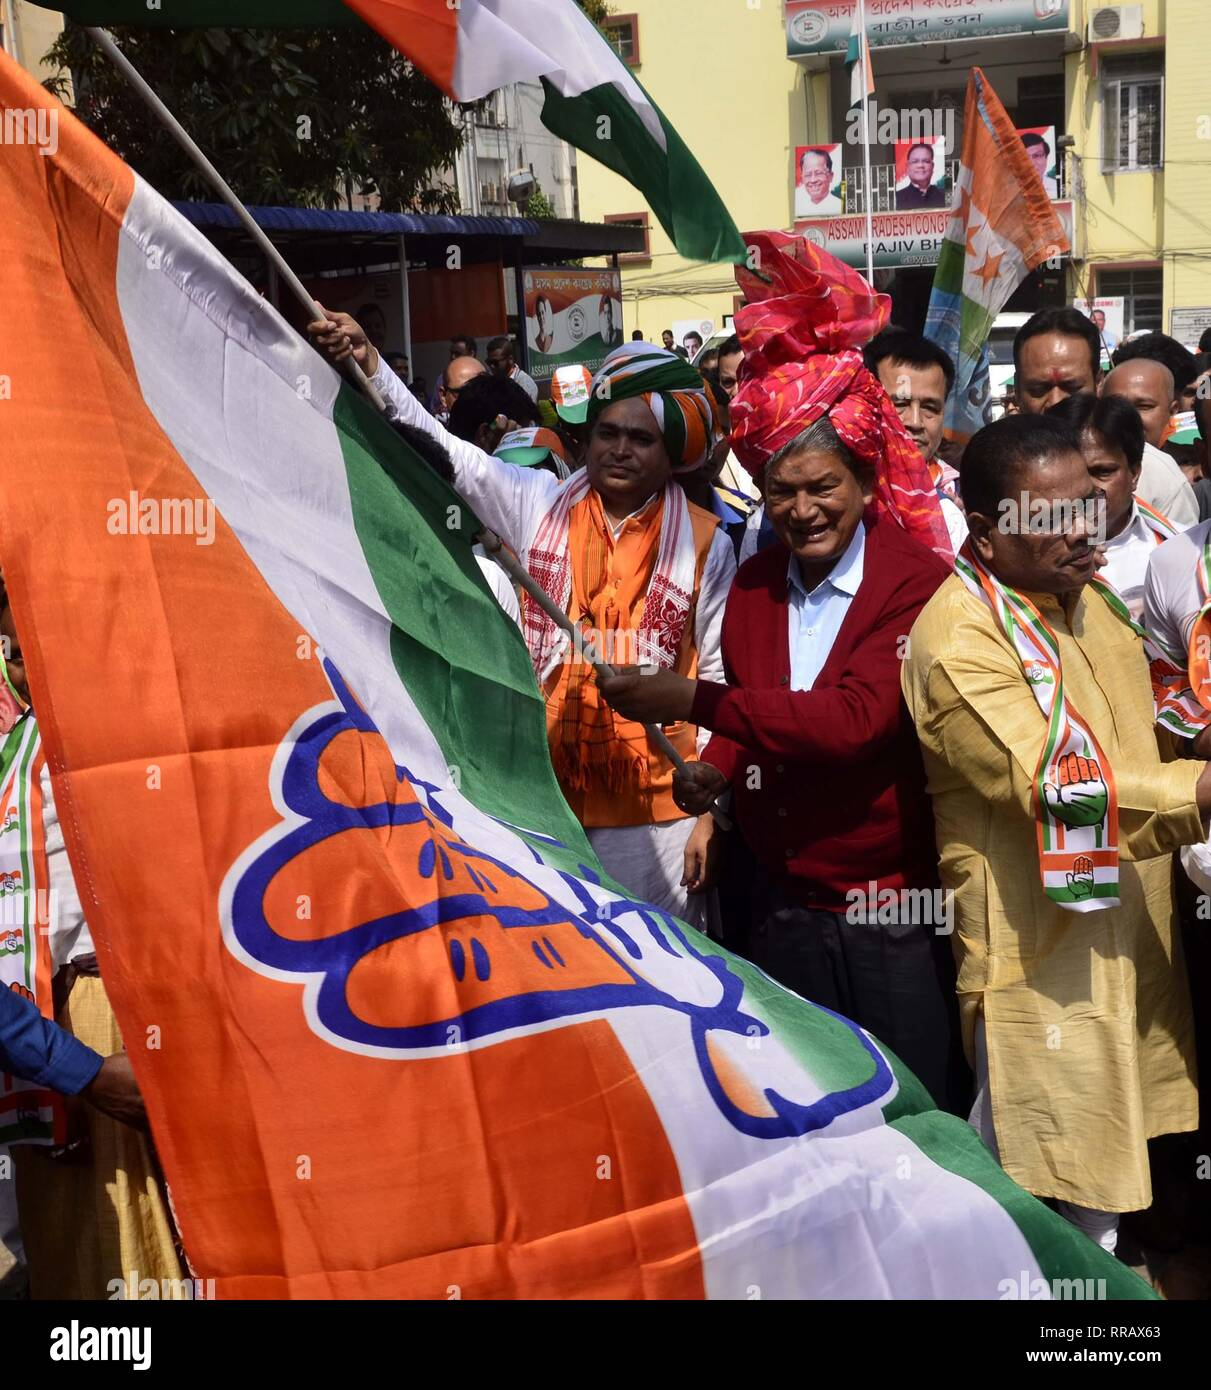 Guwahati, Assam, India. 25th Feb, 2019. Congress General Secretary Harish Rawat flagged off Prachar Yatra for publicity of Congress President Rahul Gandhi's Rally in Guwahati on Monday, 25 February 2019. Credit: Hafiz Ahmed/Alamy Live News Stock Photo